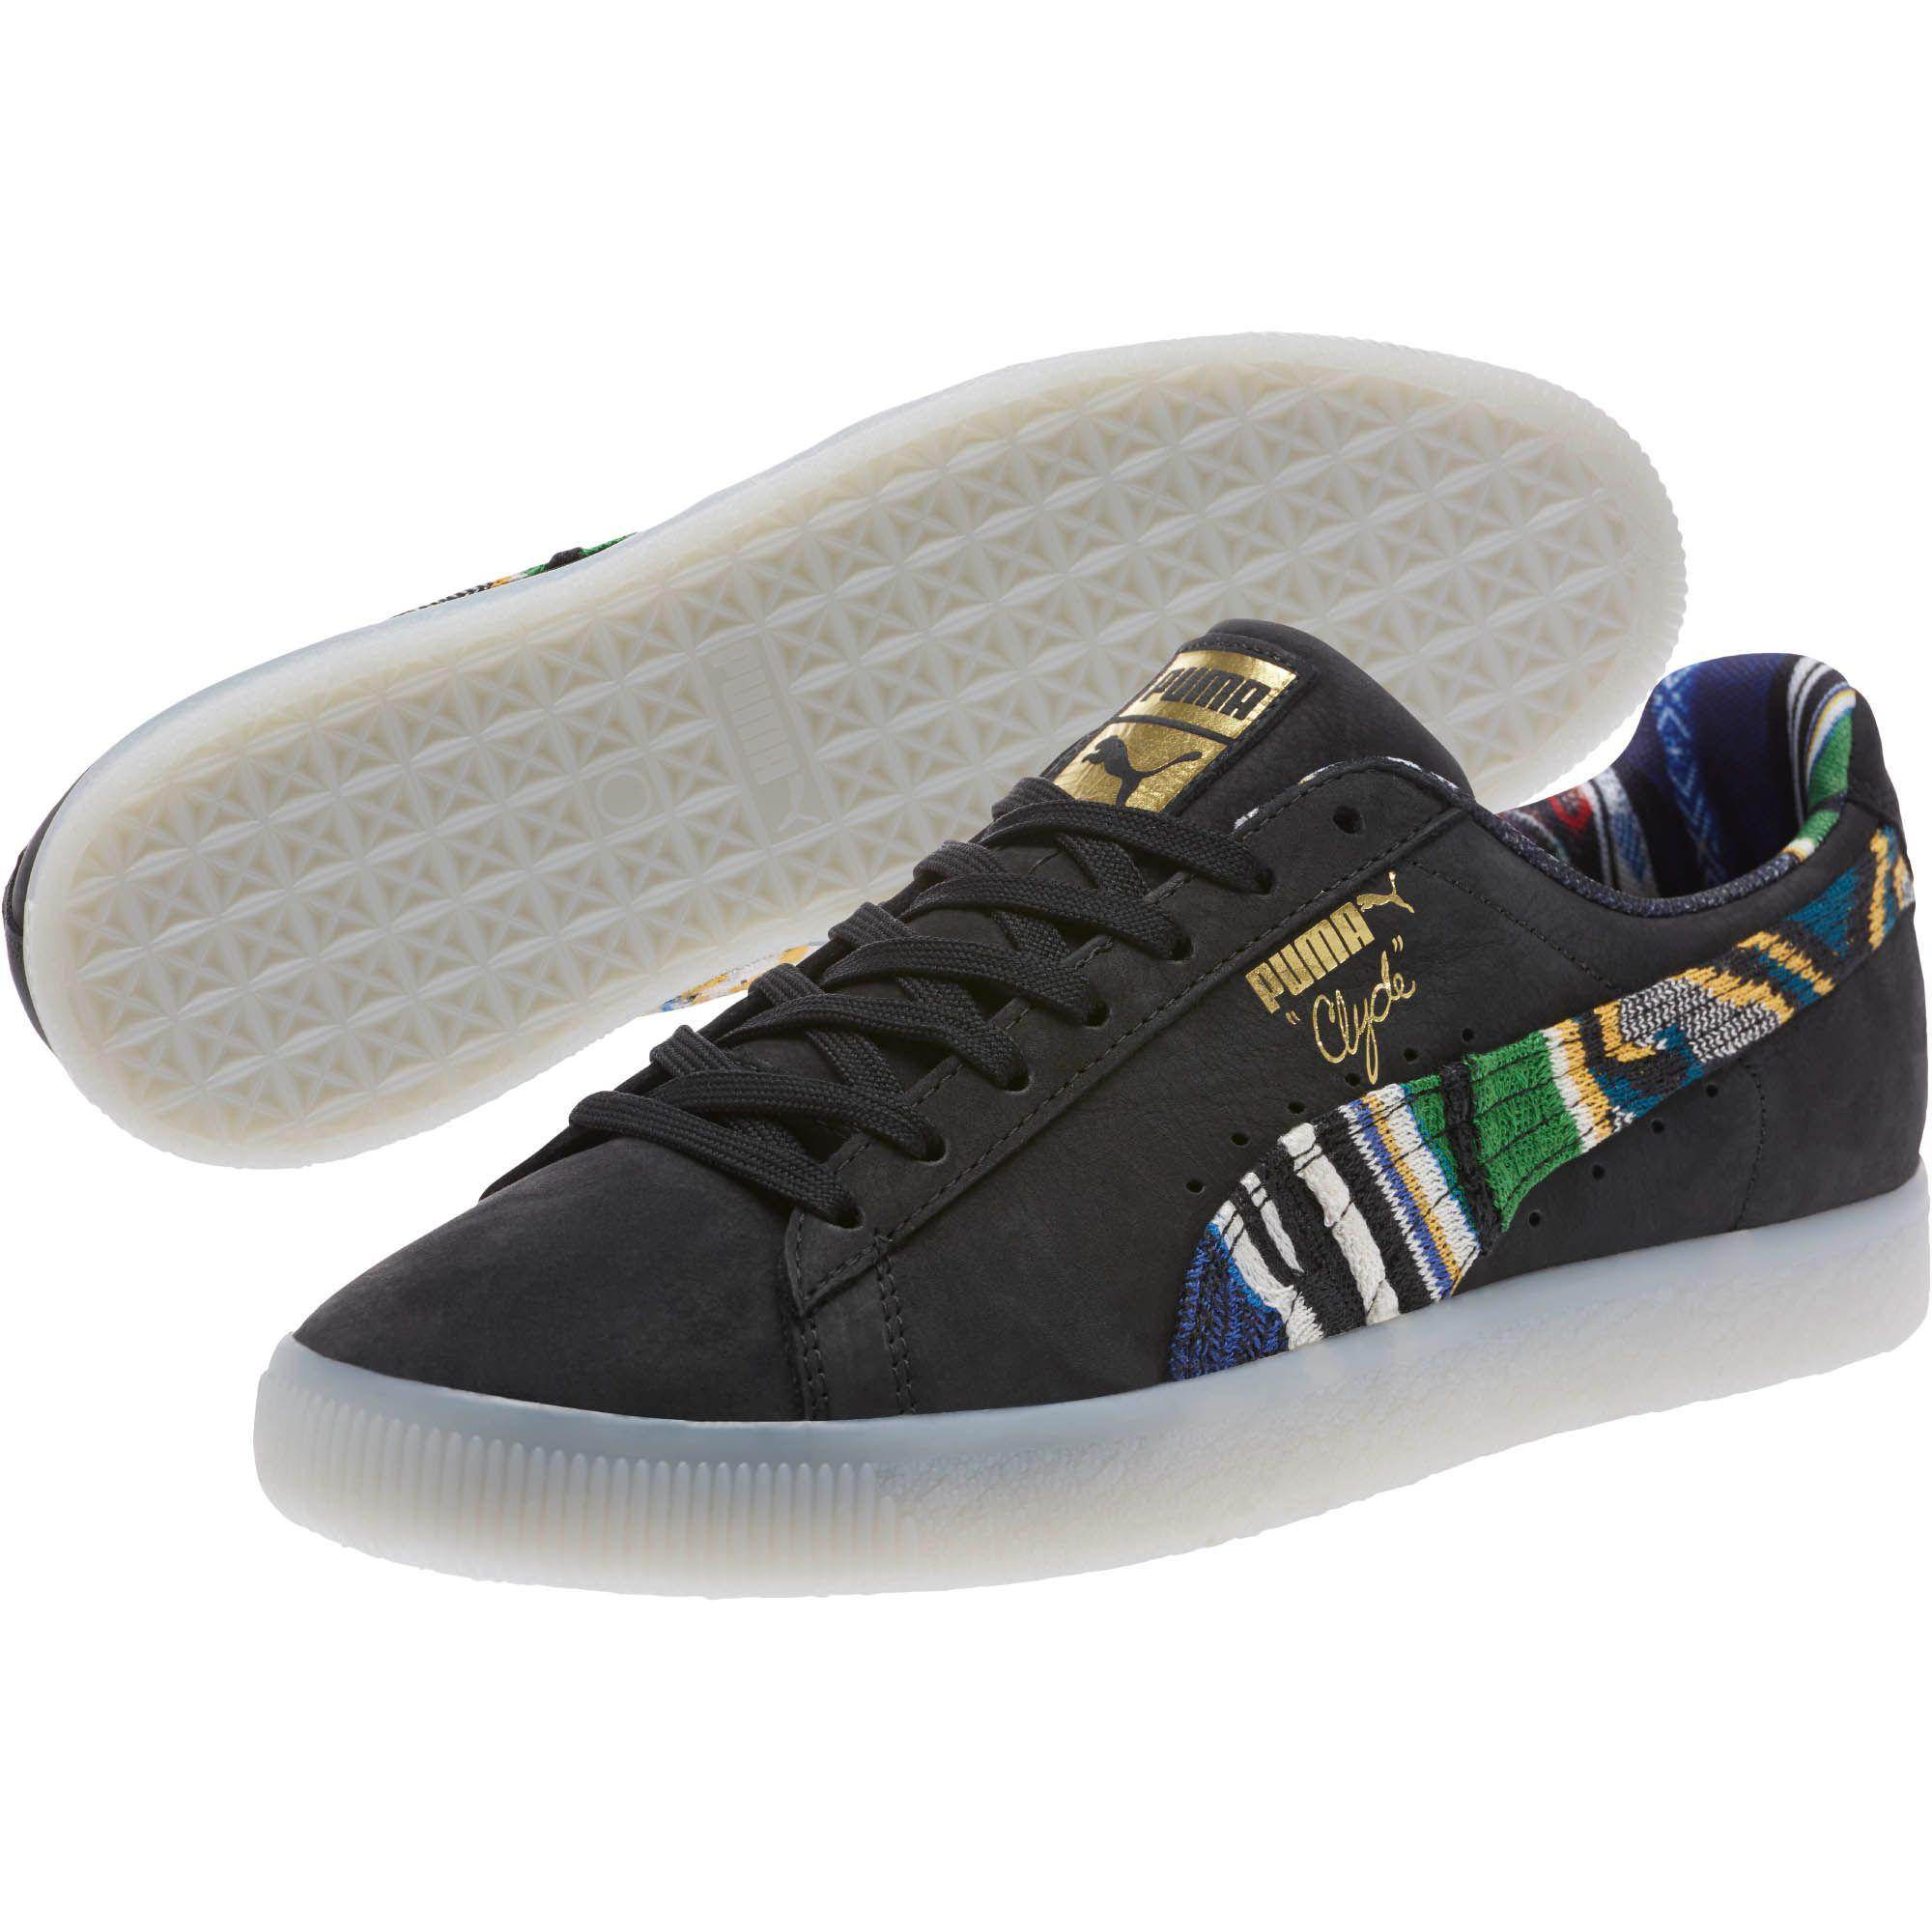 a9a6316d44b Lyst - PUMA Coogi Clyde Formstrip Sneakers in Black for Men